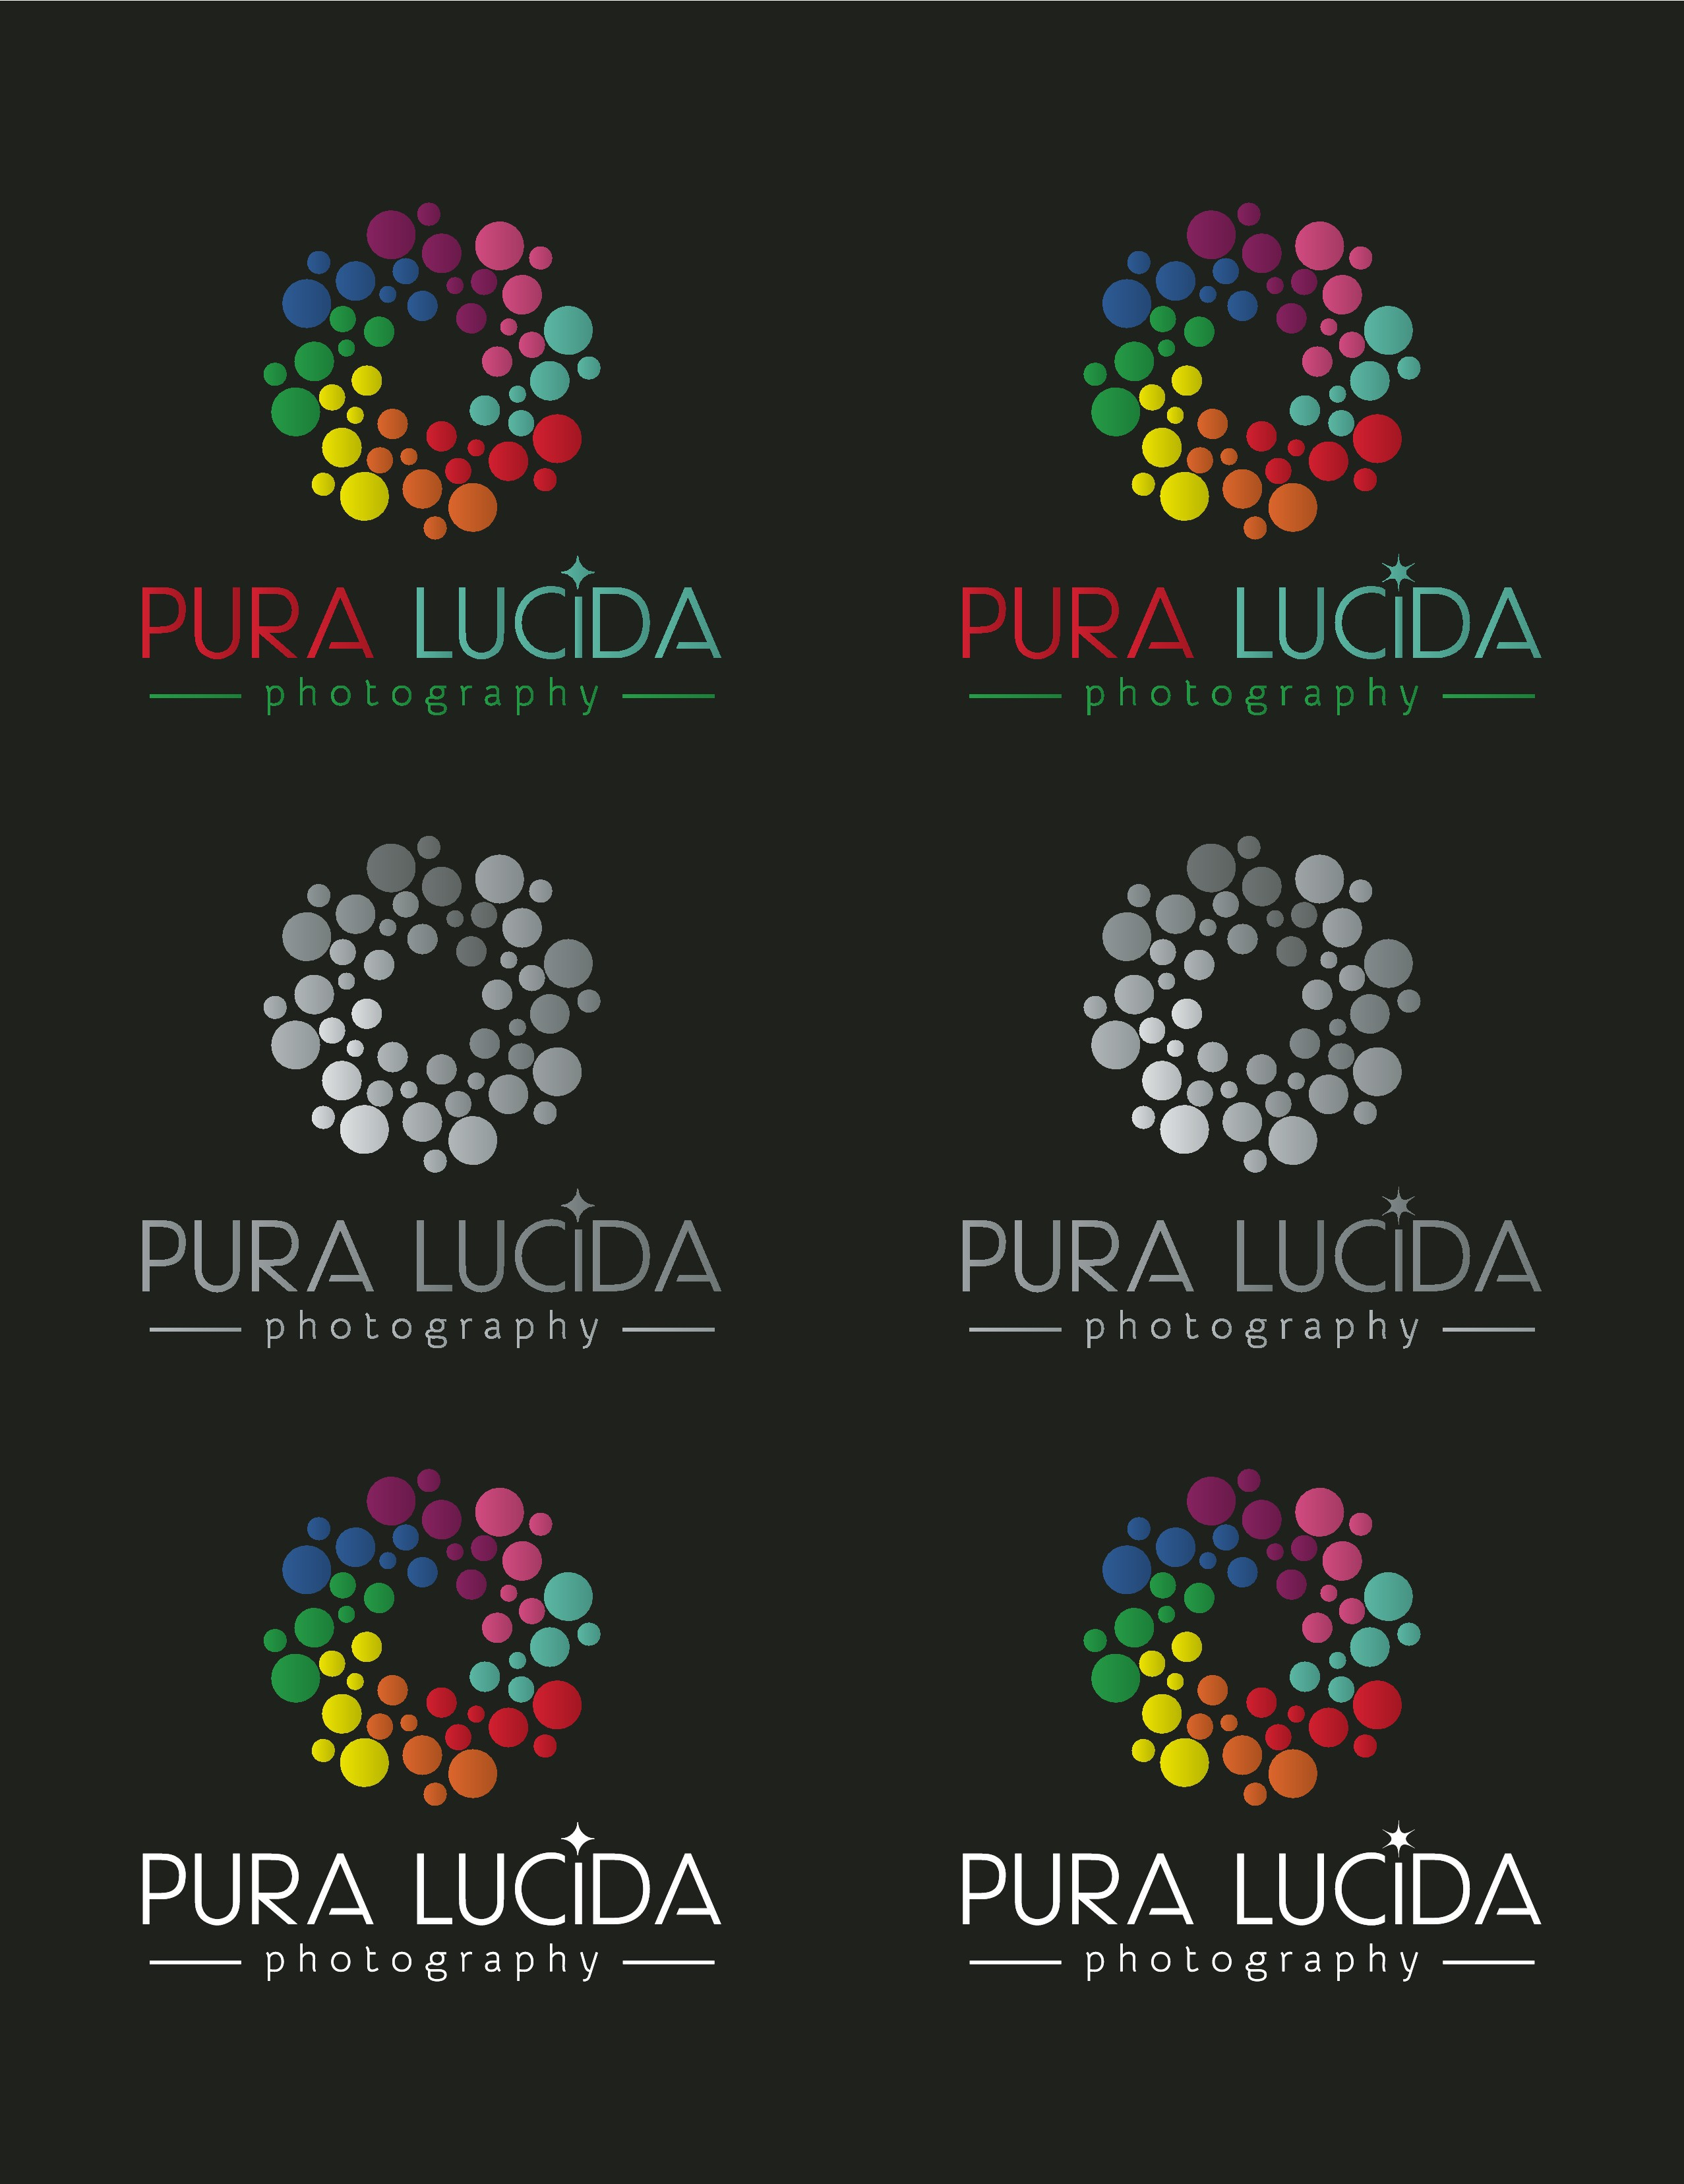 Creative, artistic, eye catching, logo for a portrait photography business. Would love to see designs not based on lens.